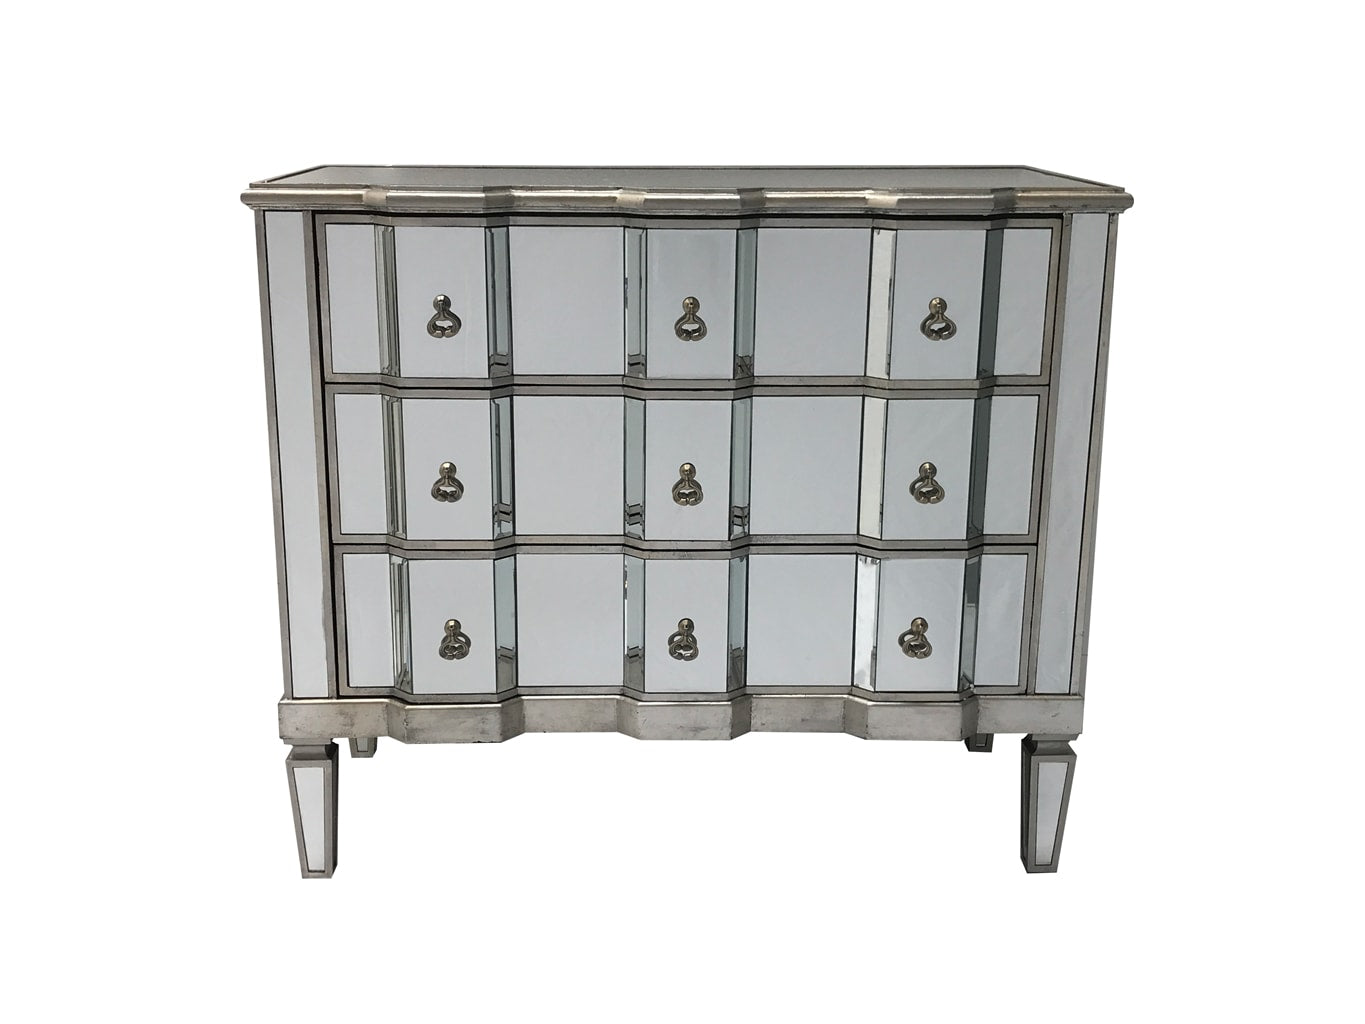 Charleston mirrored chest of 3 drawers, vintage style, silver finish, large and deep drawers, brass drop handles